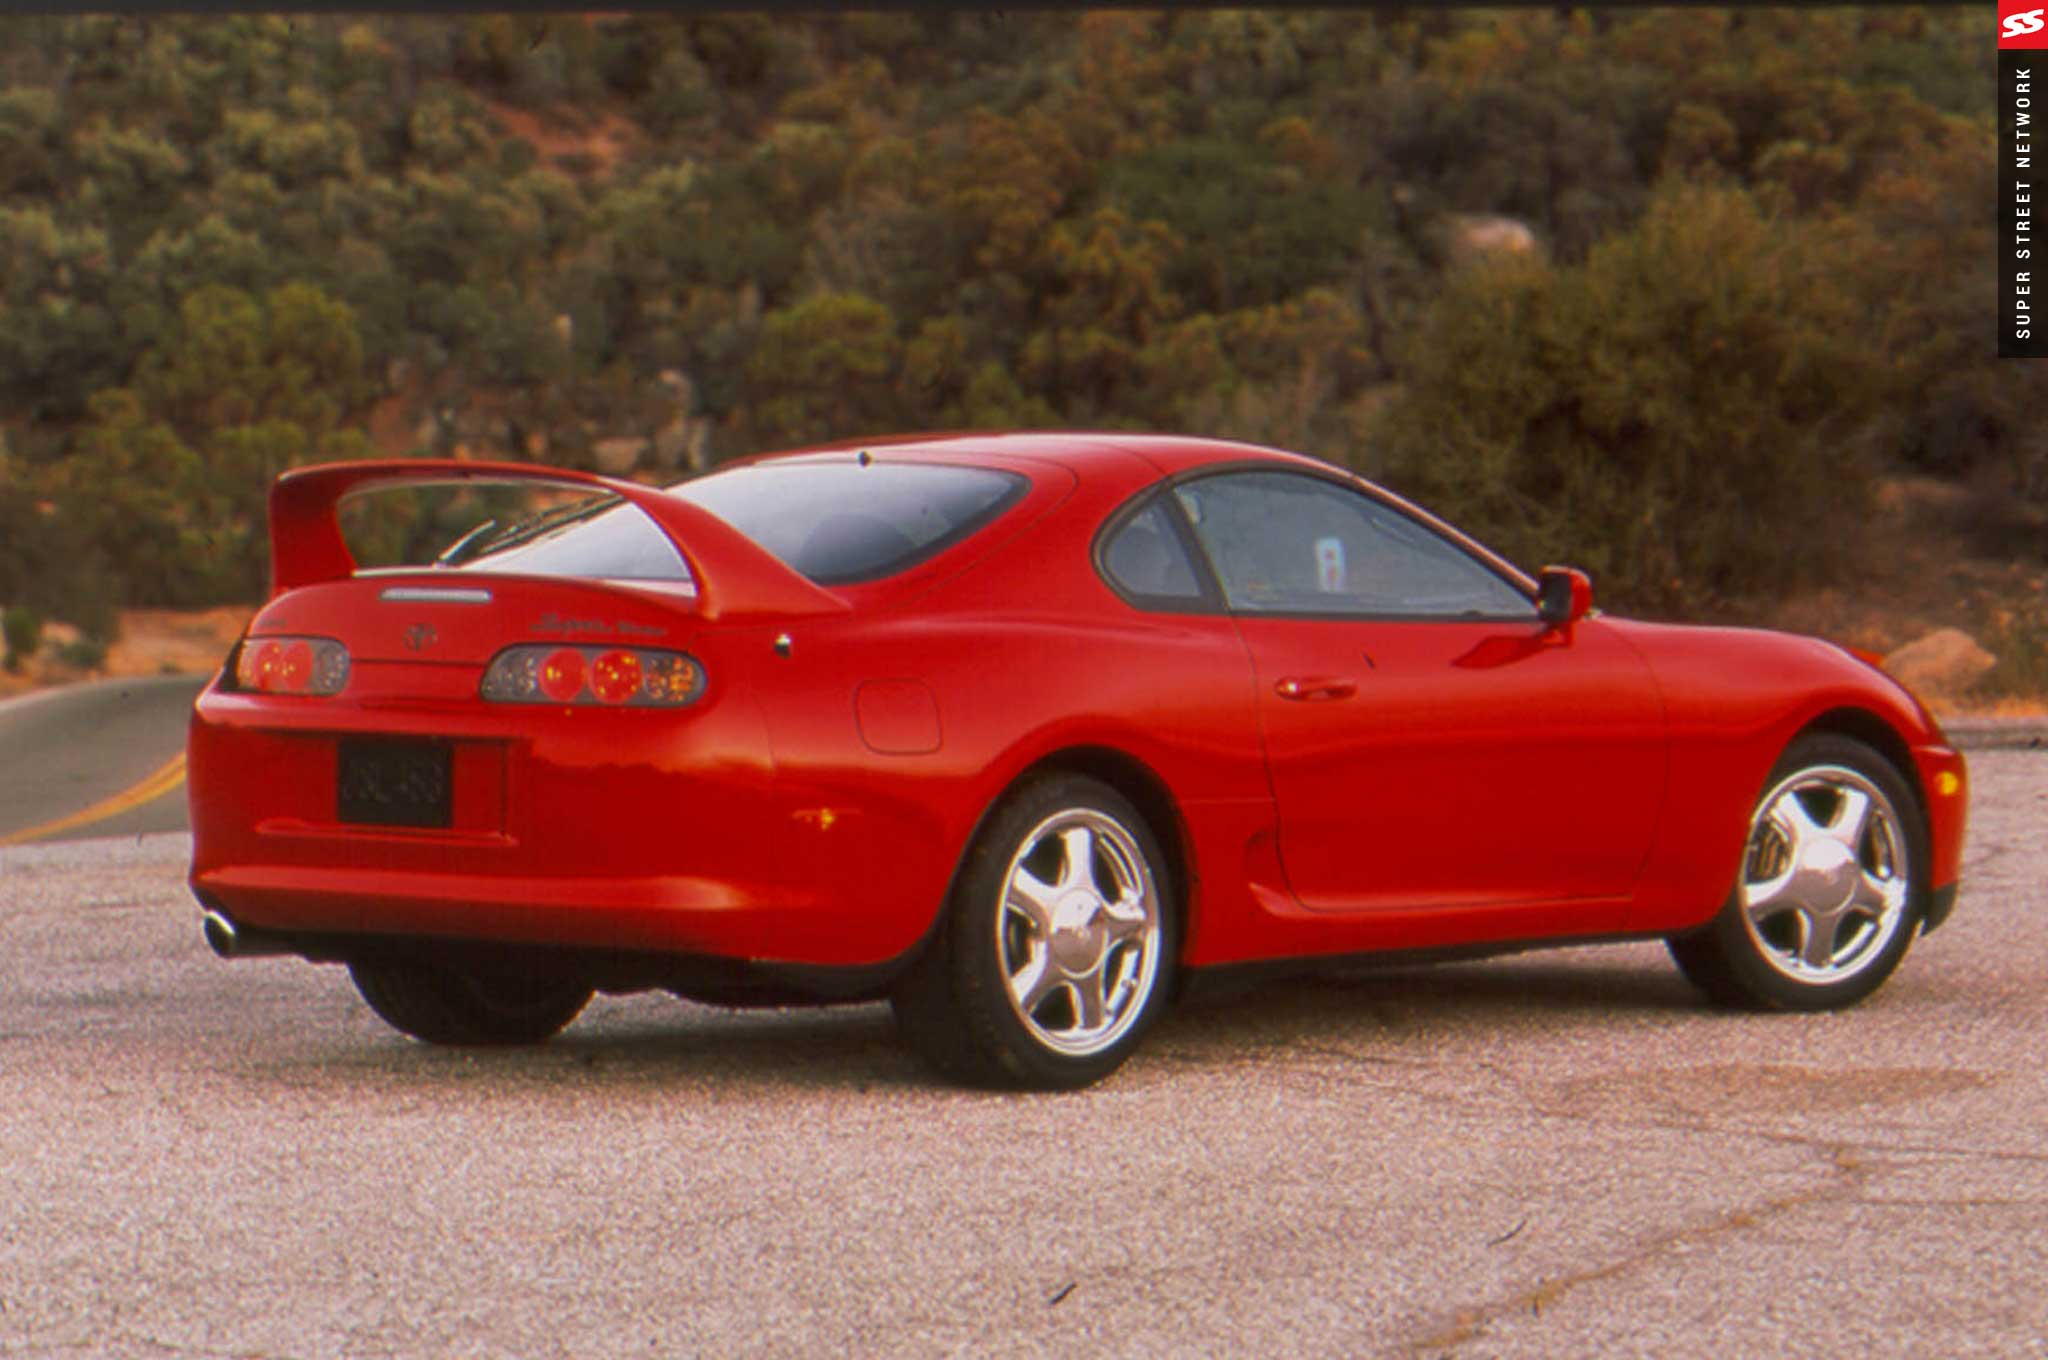 Throwback Thursday: The 1993-1998 Toyota Supra